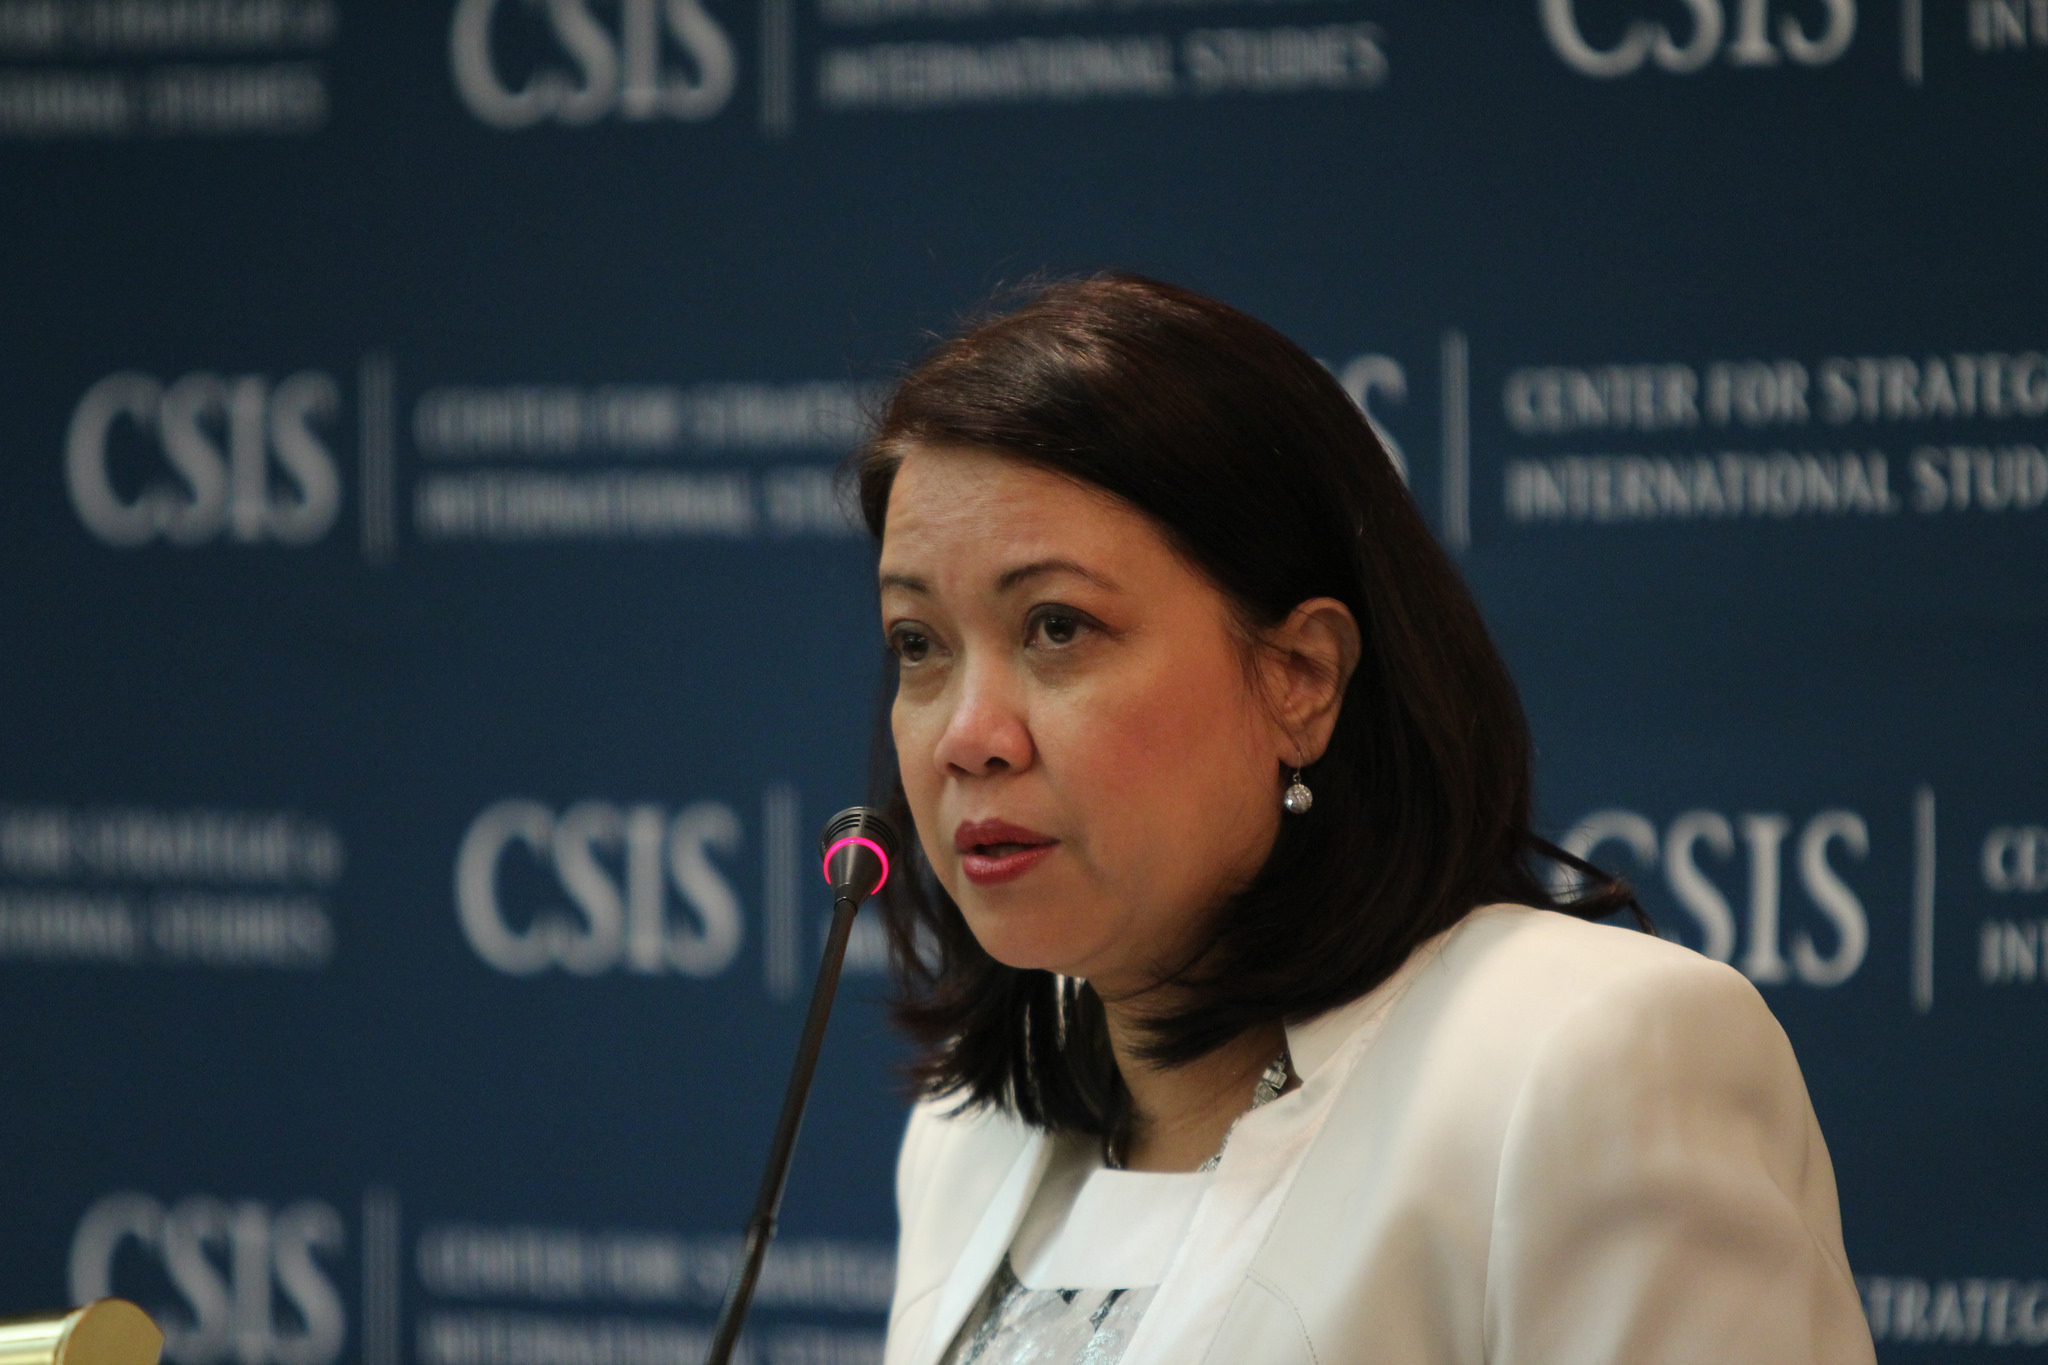 Supreme Court Chief Justice Maria Lourdes Sereno. (Photo by Center for Strategic and International Studies/Flickr)